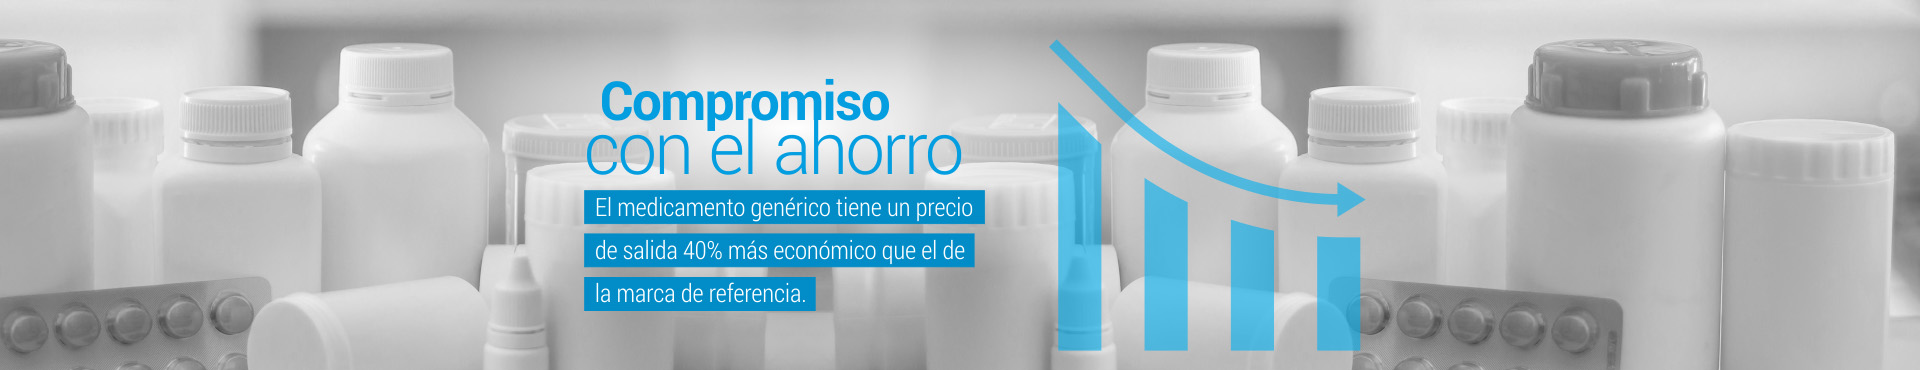 banner-canales-compromiso-ahorro